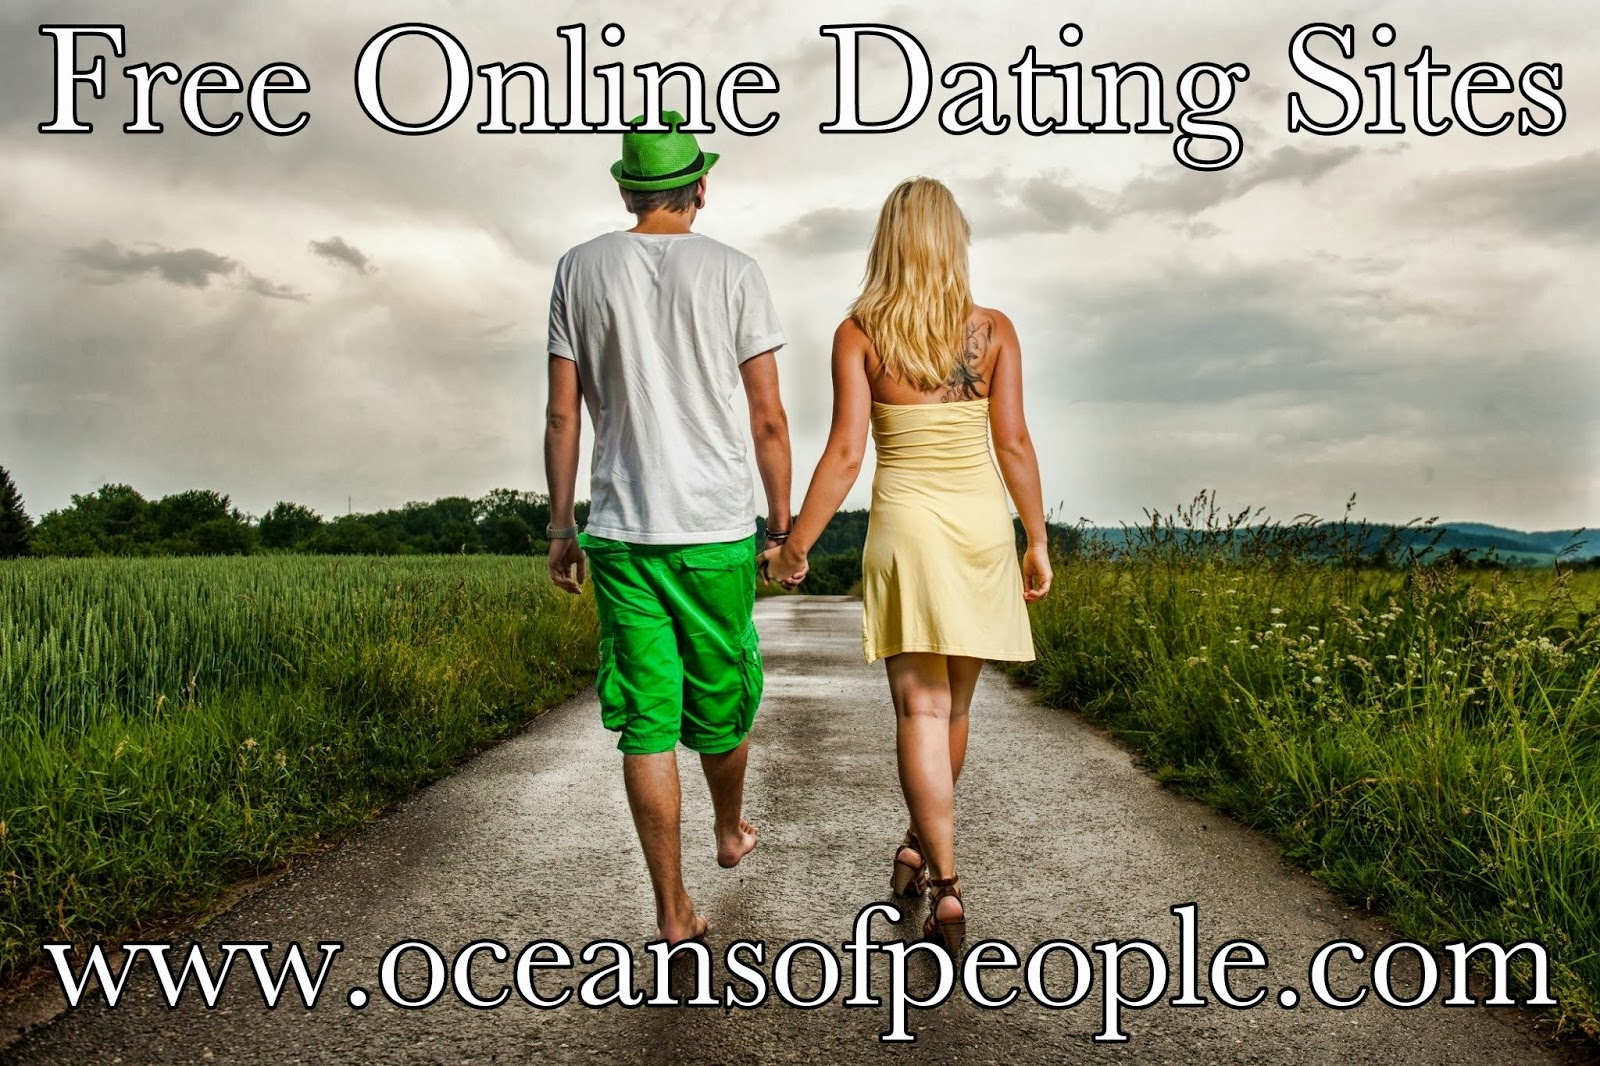 100% free online dating in donnybrook Find your perfect match in your city for chatting & dating at one of the top free online indian dating (hookup) apps & sites, dateindcom no hidden charges 100% free for registration.